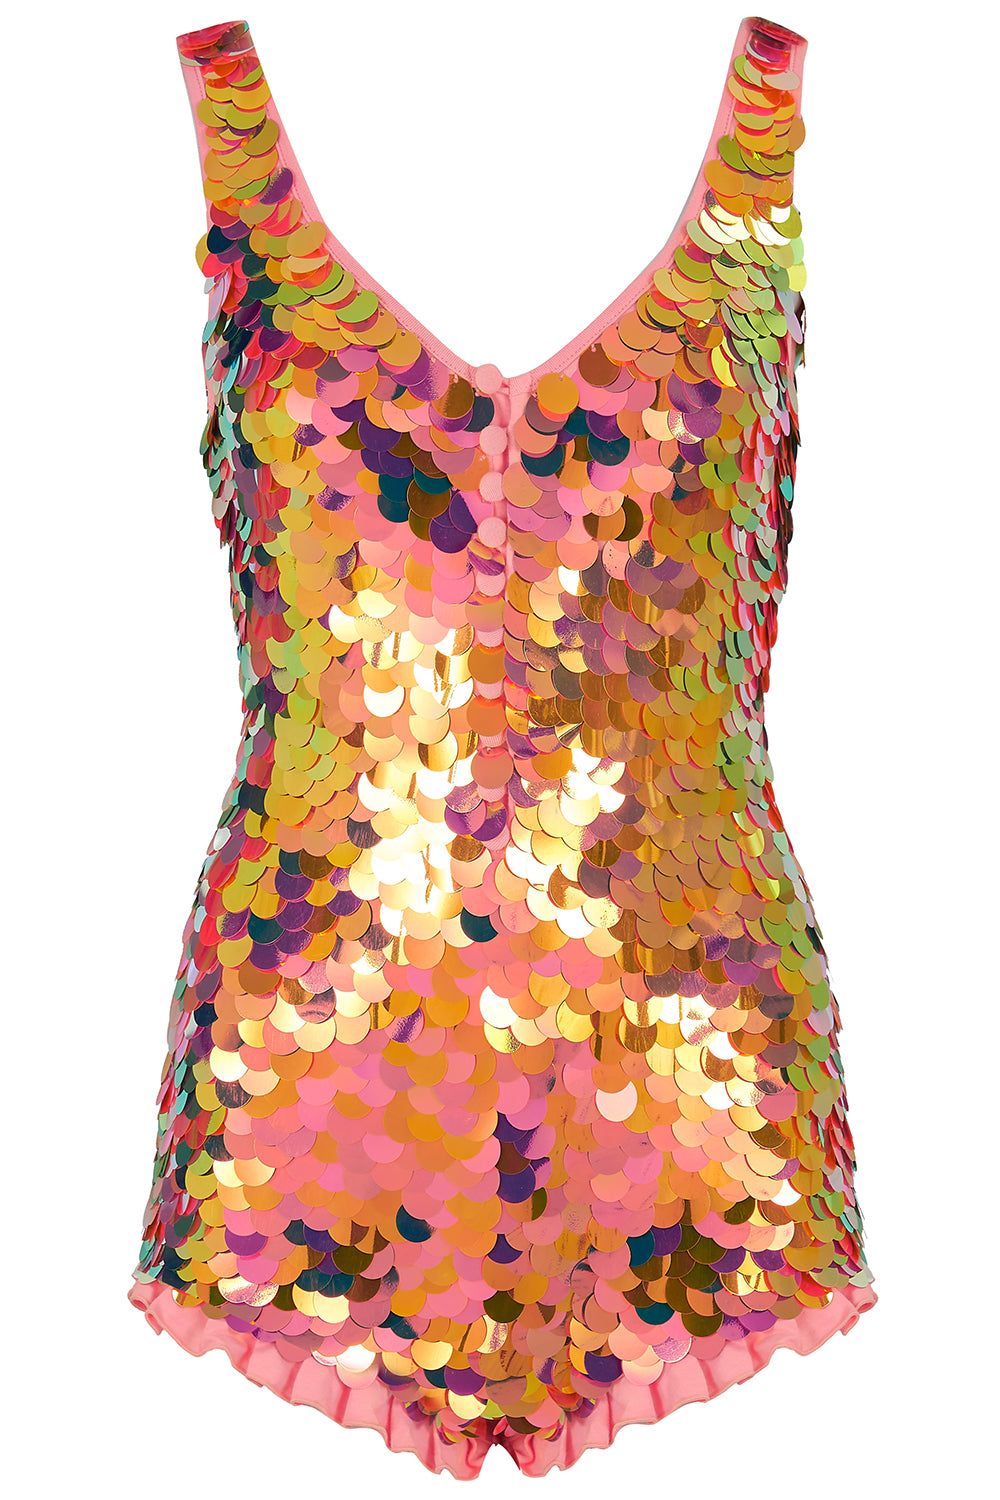 SEA CIRCUS SEQUIN PLAYSUIT - SOLAR